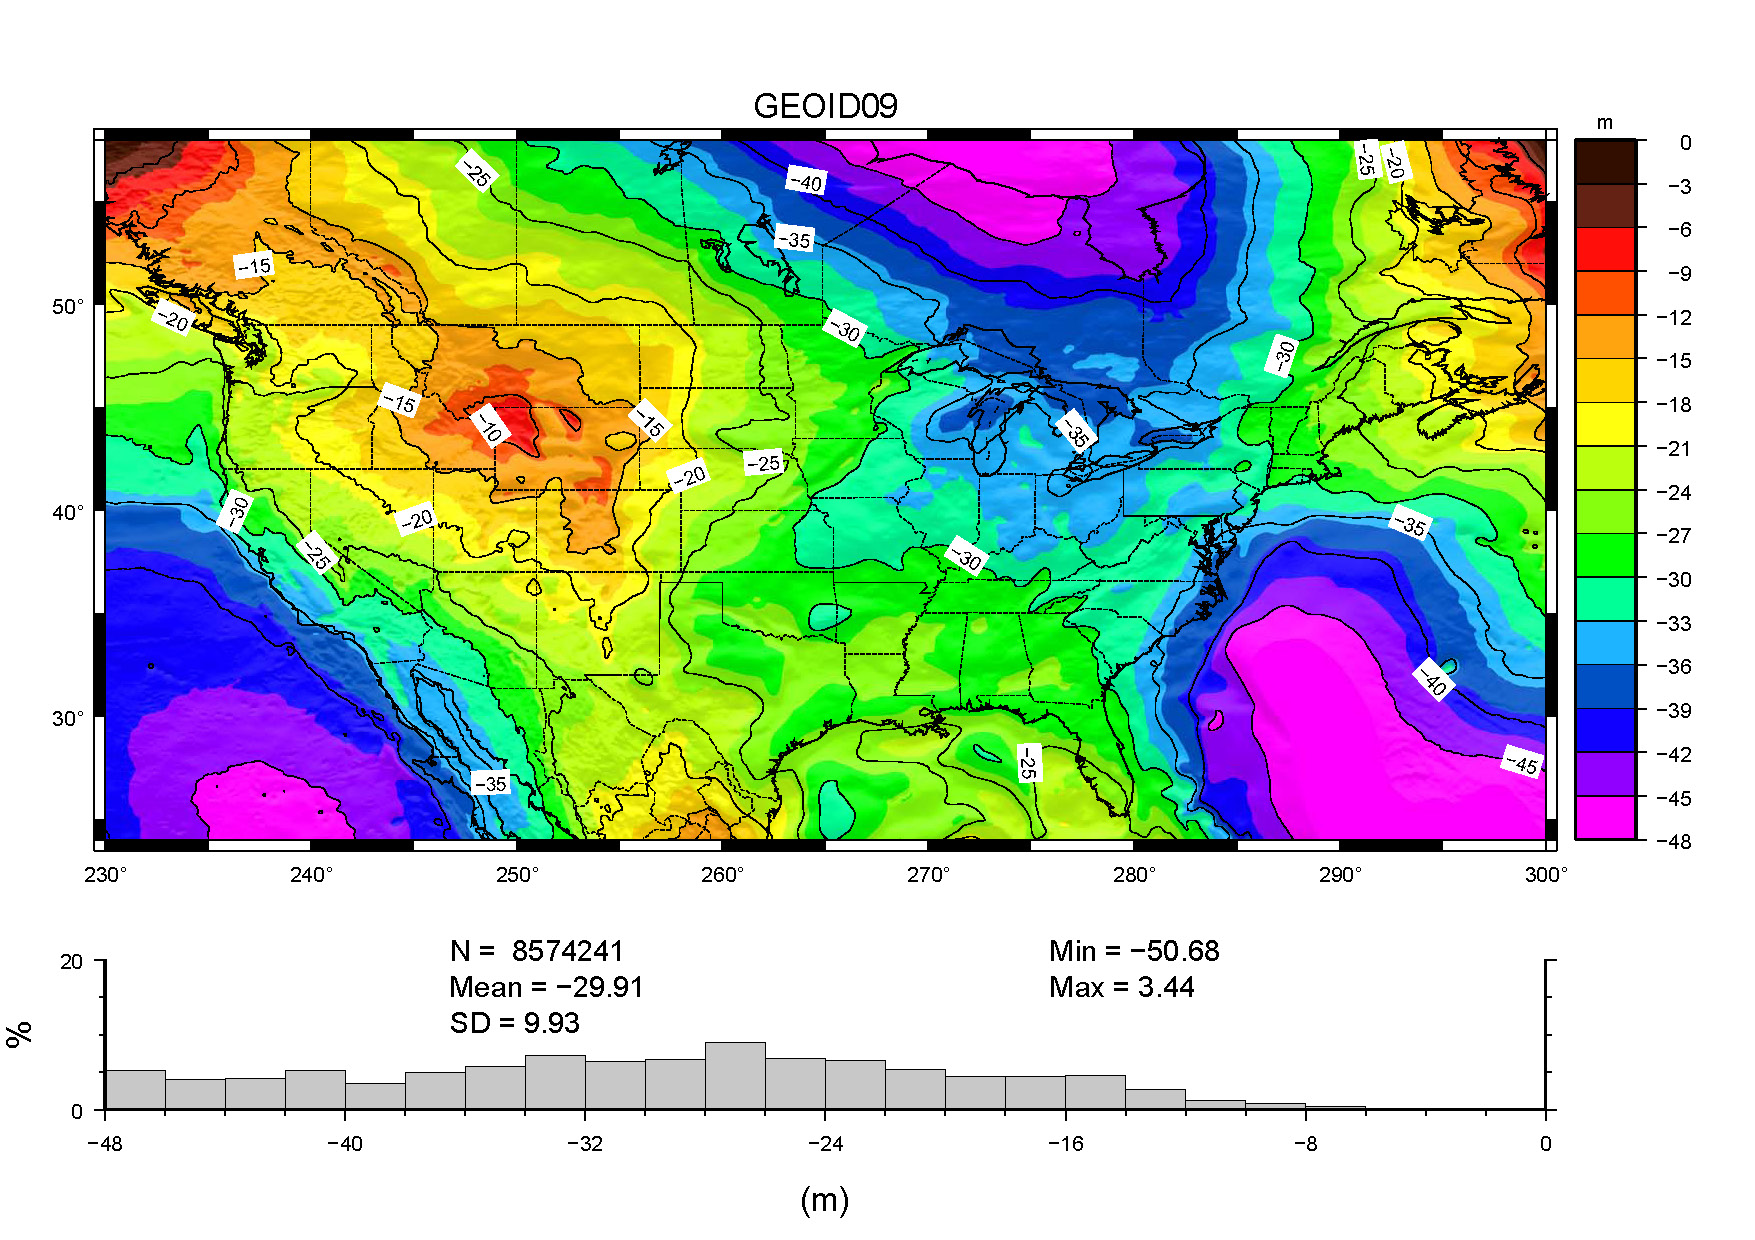 A color coded model of geoid undulations          across the conterminous United States.          See the text below for further description.